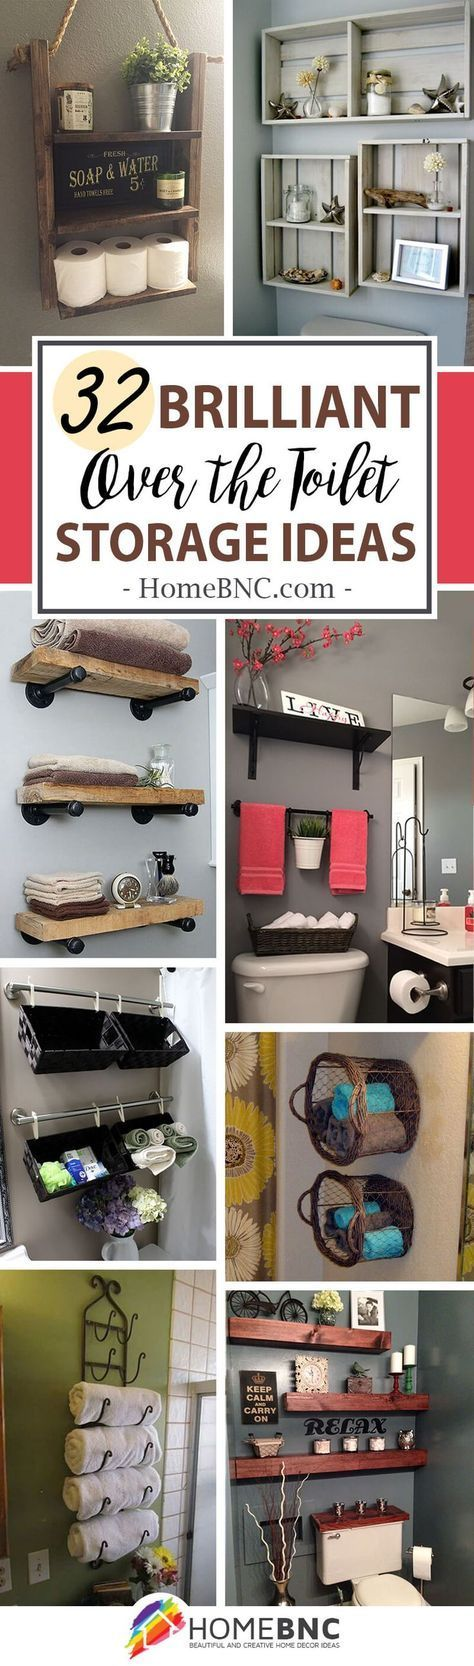 Badezimmer dekor ideen 2018 over the toilet storage decor ideas in   home decor  pinterest